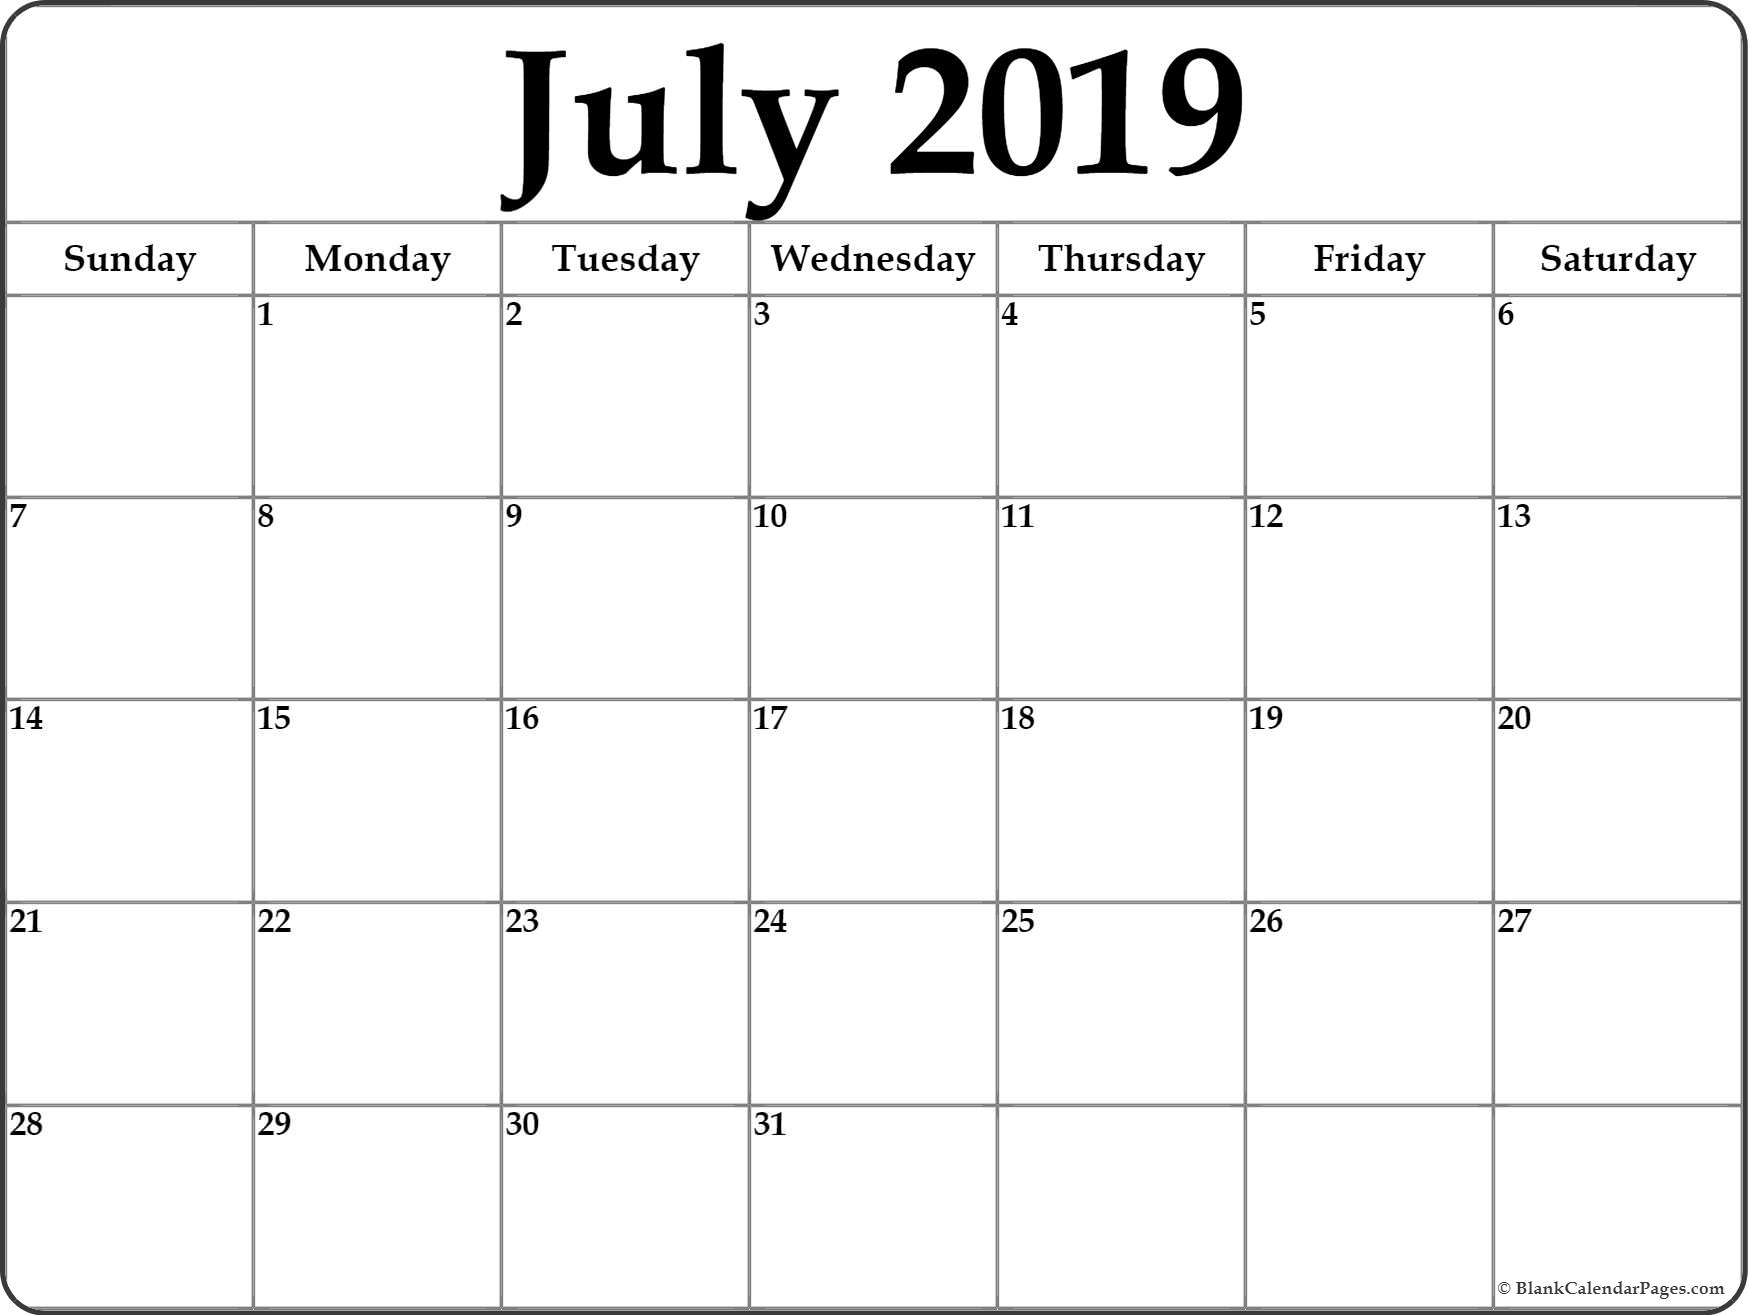 July 2019 Blank Calendar Templates. with regard to 31 Day Month Calendar Printable